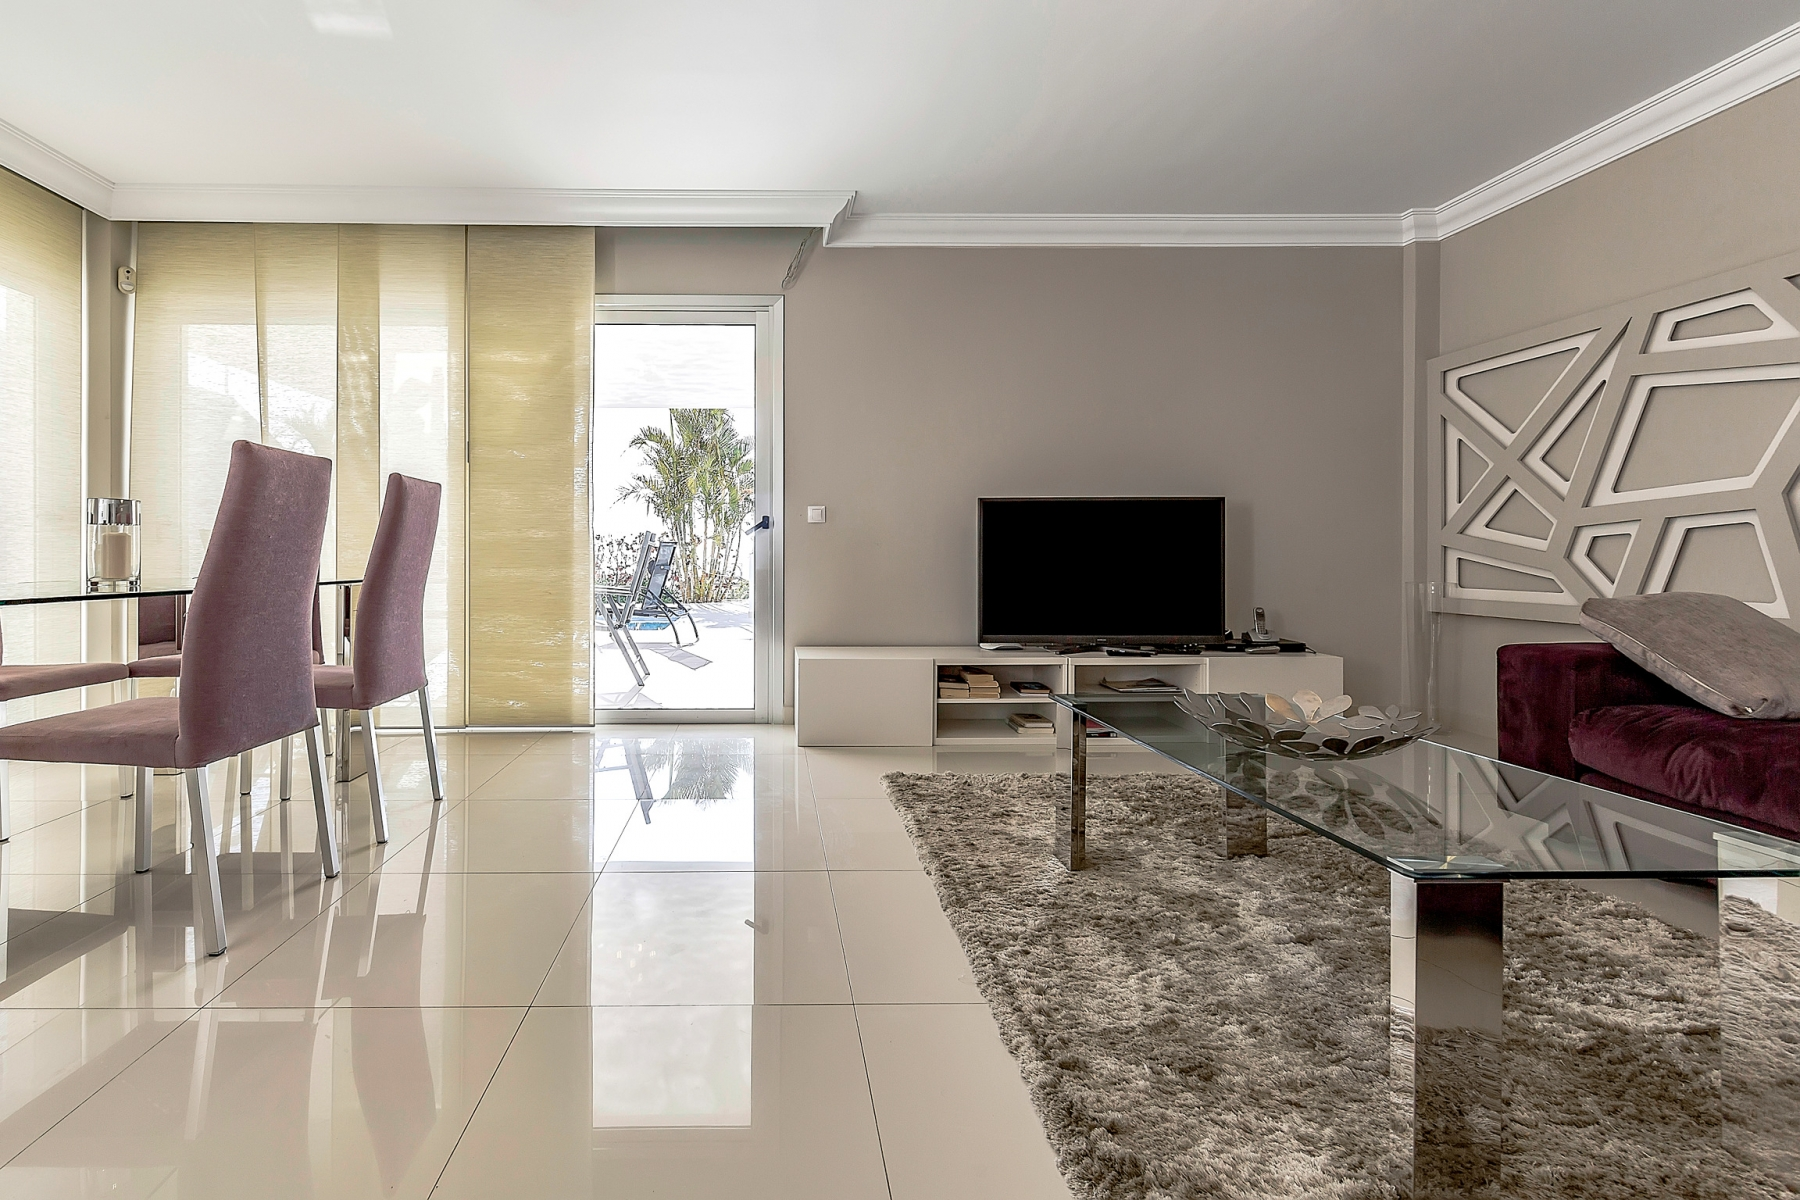 Properties for Sale in Tenerife, Canary Islands, Spain   SylkWayStar Real Estate. Luxury villa in the fashionable area of the south of the island of Tenerife – Madroñal.. Image-22812